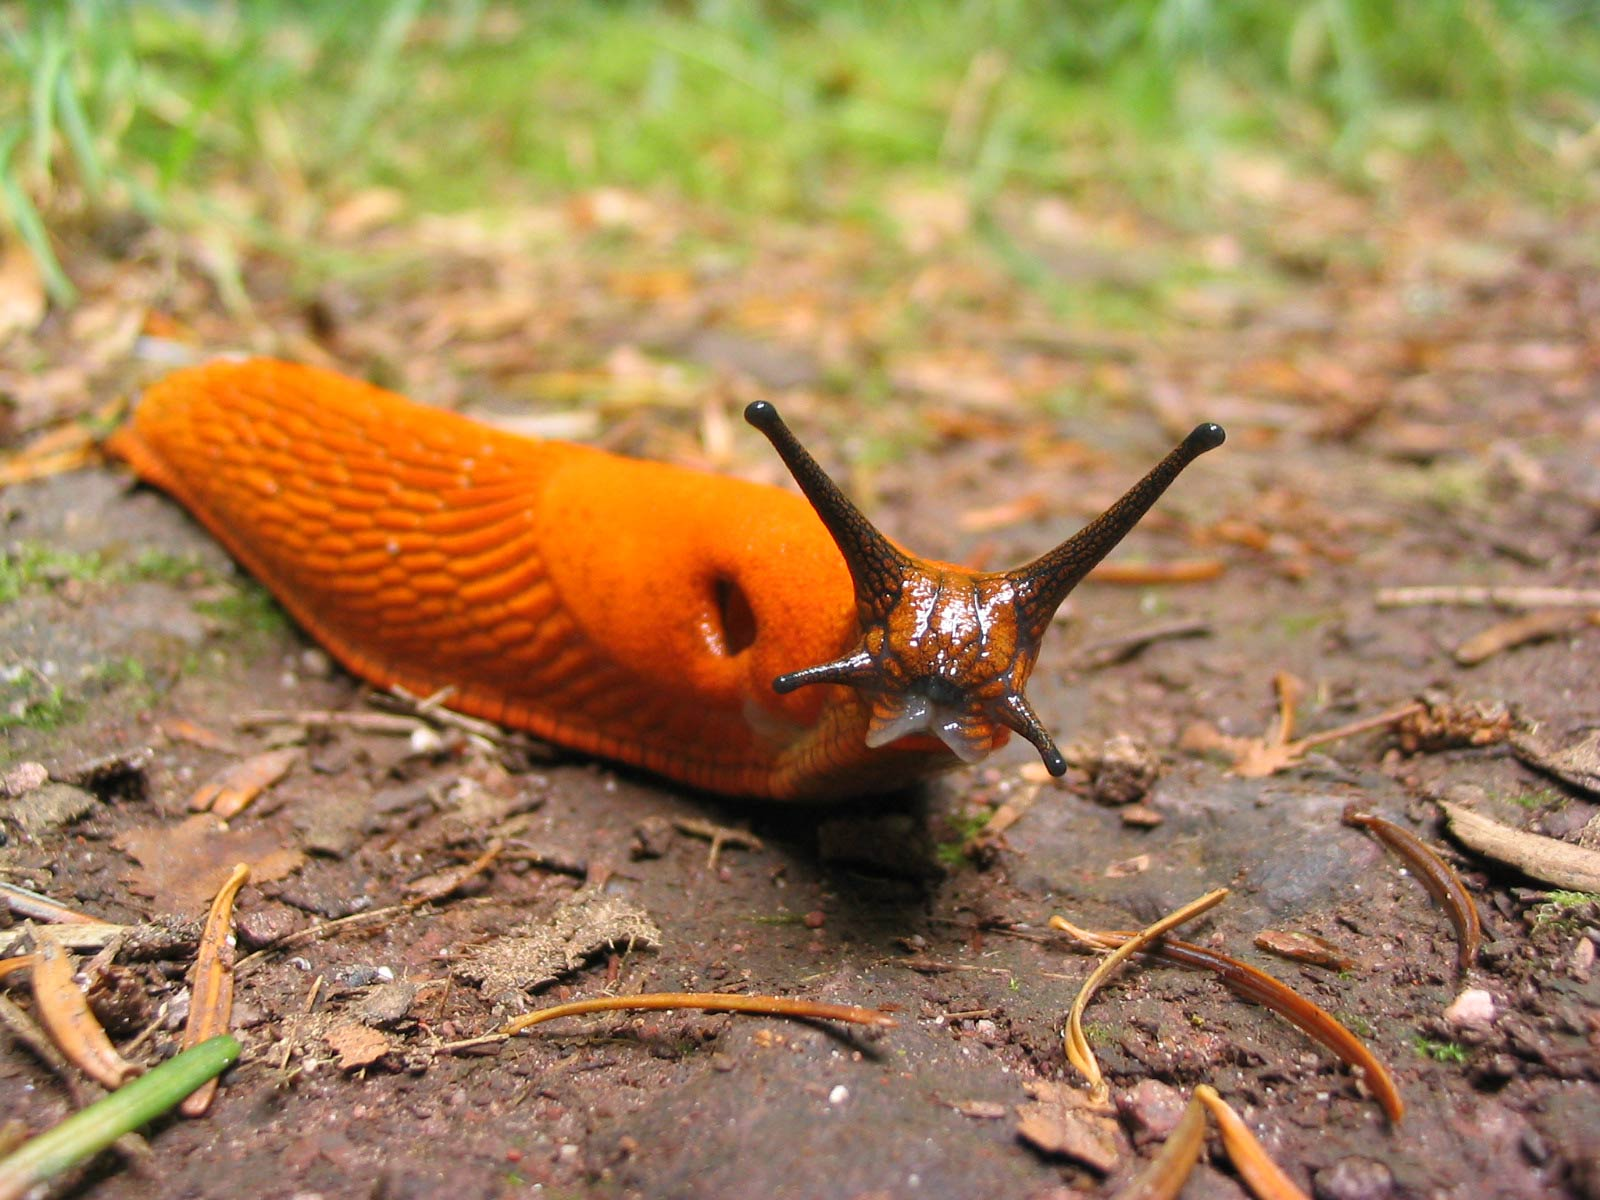 Free Slug Wallpaper download - Animals Town